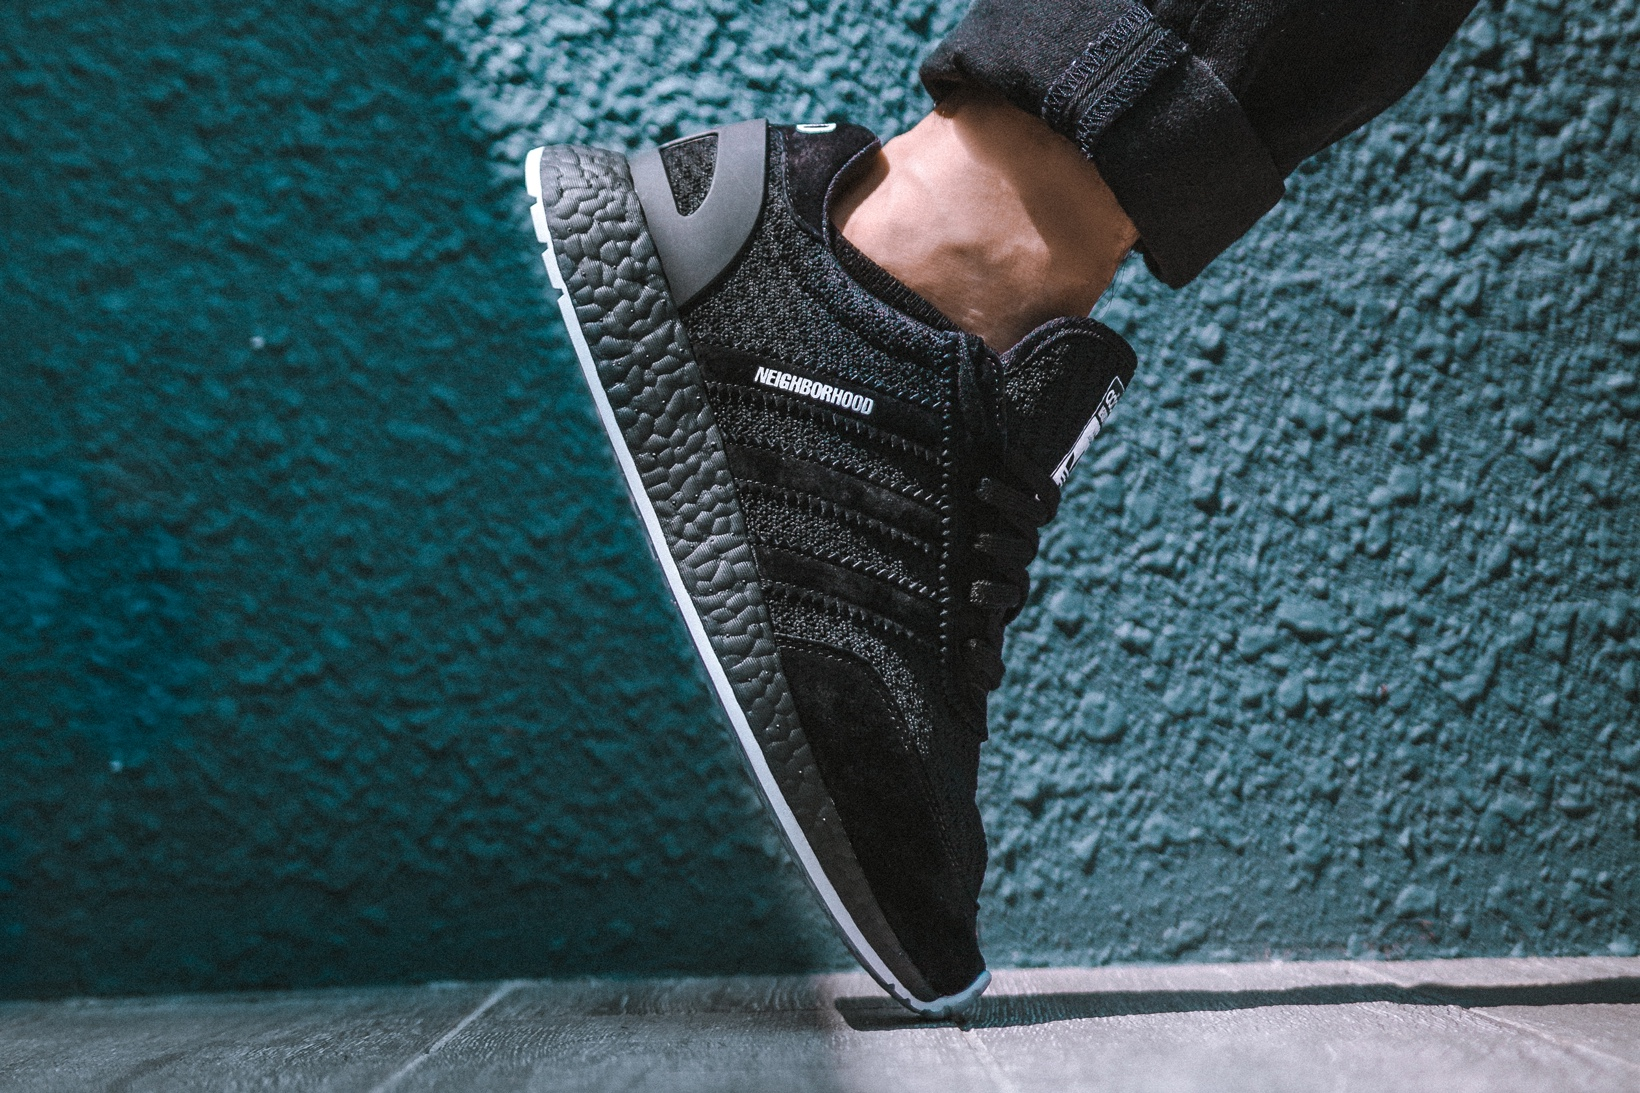 Sneak Peek: NEIGHBORHOOD x adidas Iniki Runner Boost